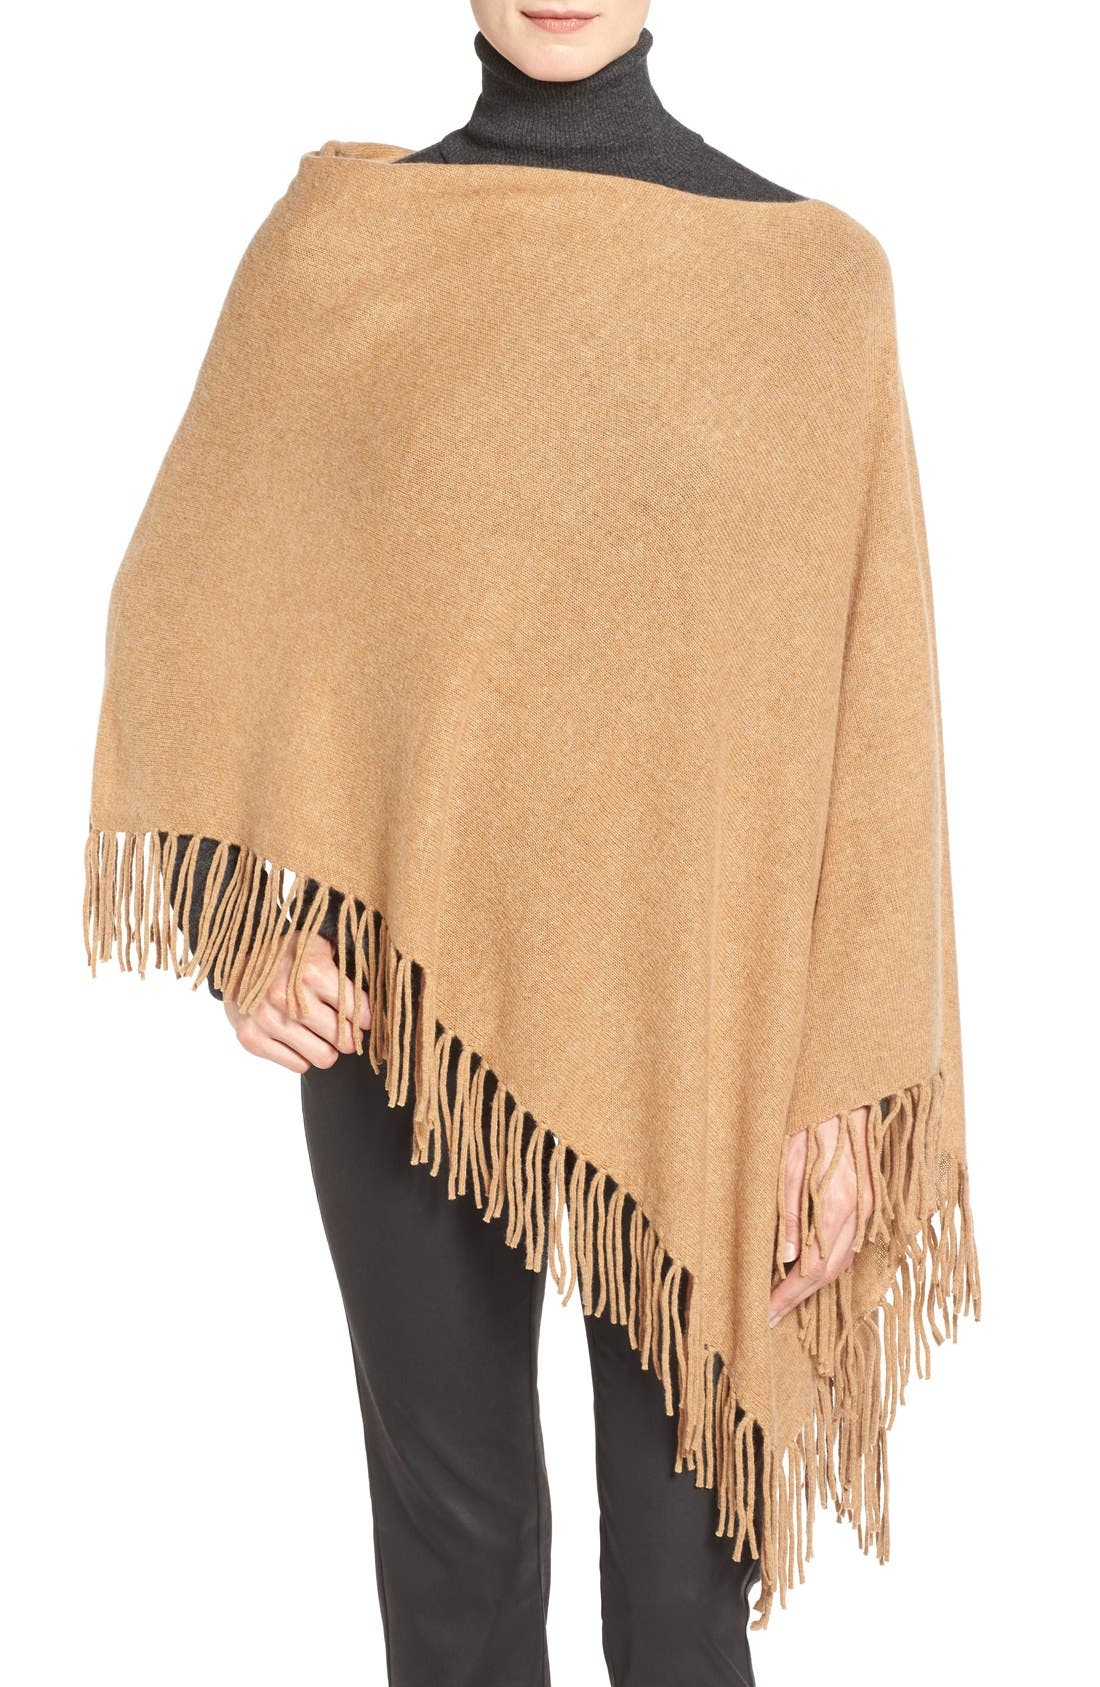 Alternate Image 1 Selected - White + Warren Convertible Cashmere Poncho with Fringe